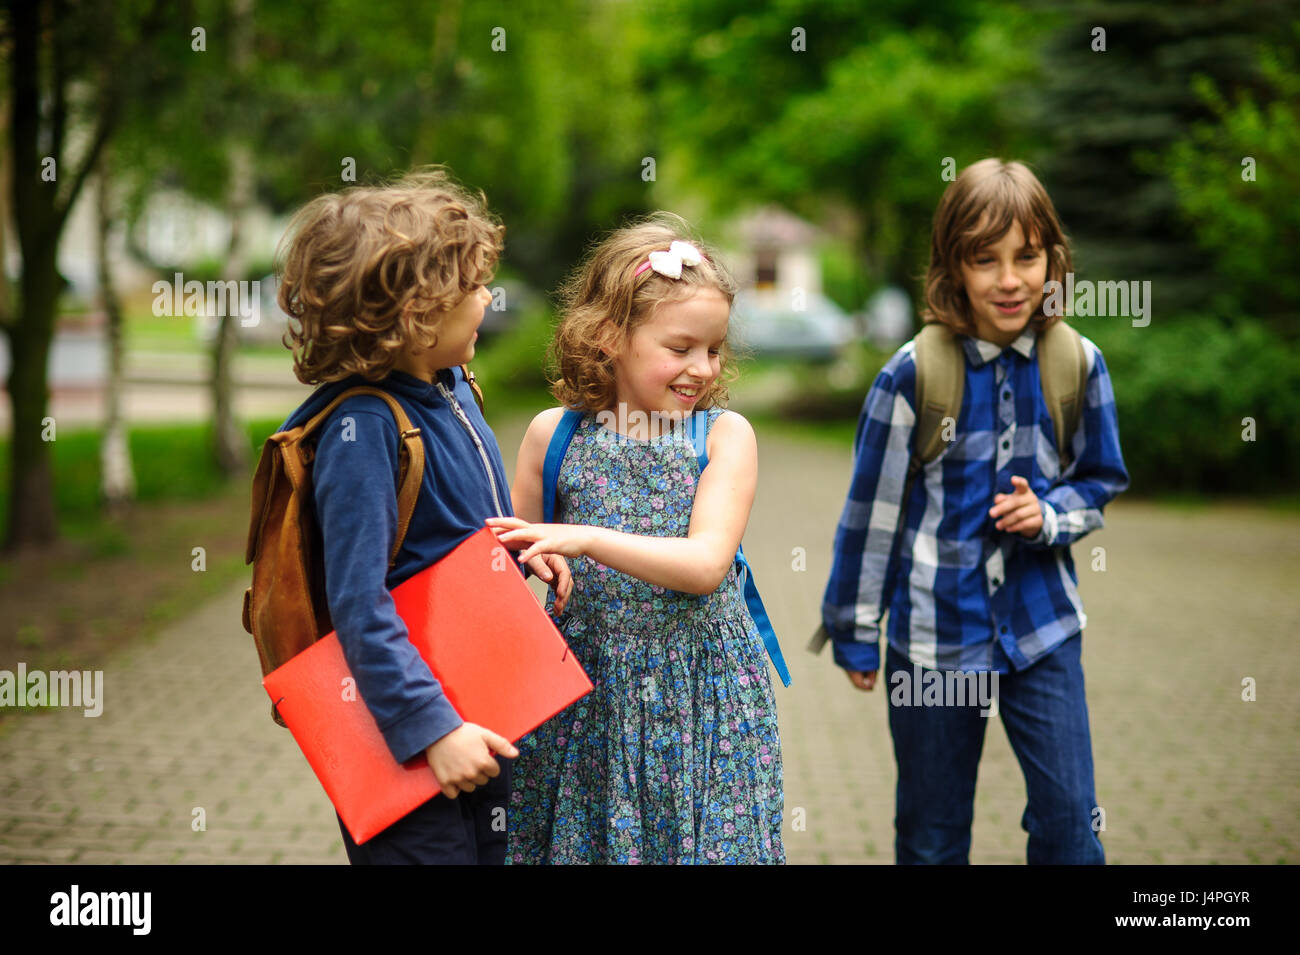 Little school students have started a game on the schoolyard. Two boys and the girl have fun waiting for the beginning - Stock Image